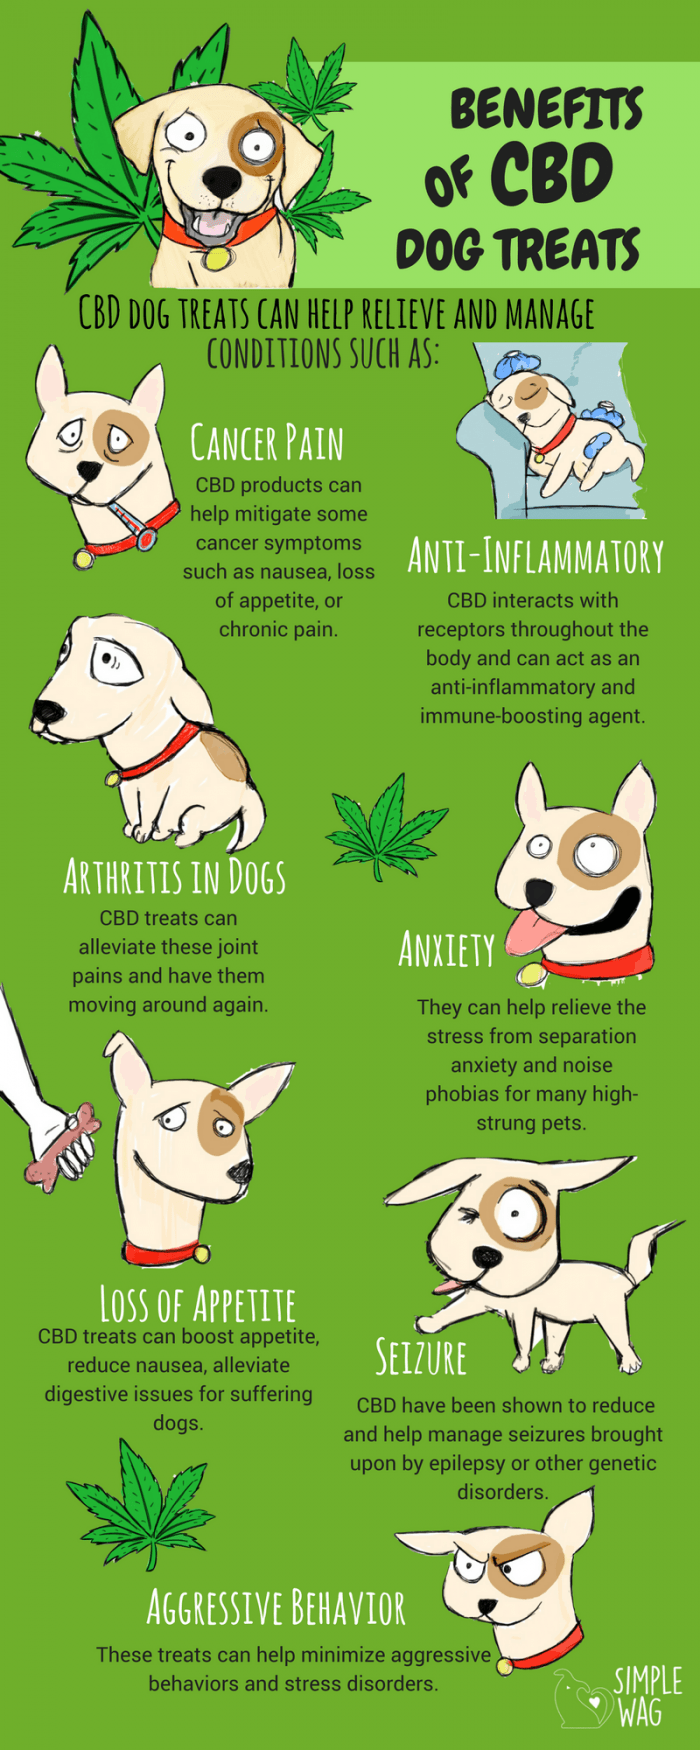 Benefits Of CBD Dog Treats Daily Infographic